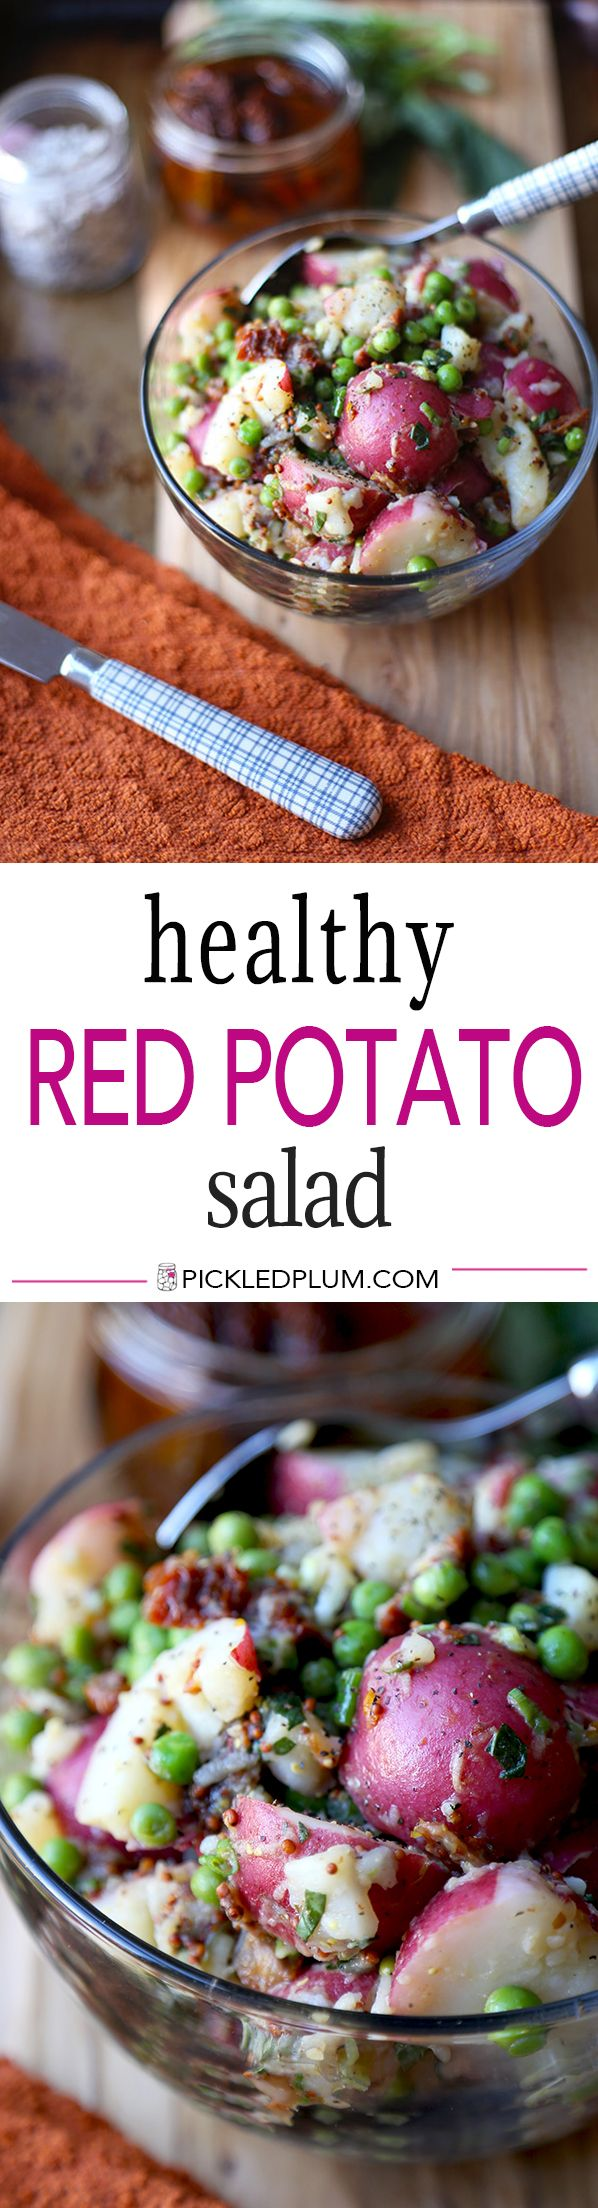 Healthy Red Potato Salad - A deliciously tangy red potato salad with sun dried tomatoes,  green peas and basil, tossed in a light mustard and vinegar dressing. Ready in 15 minutes! Take it to lunch! | pickledplum.com